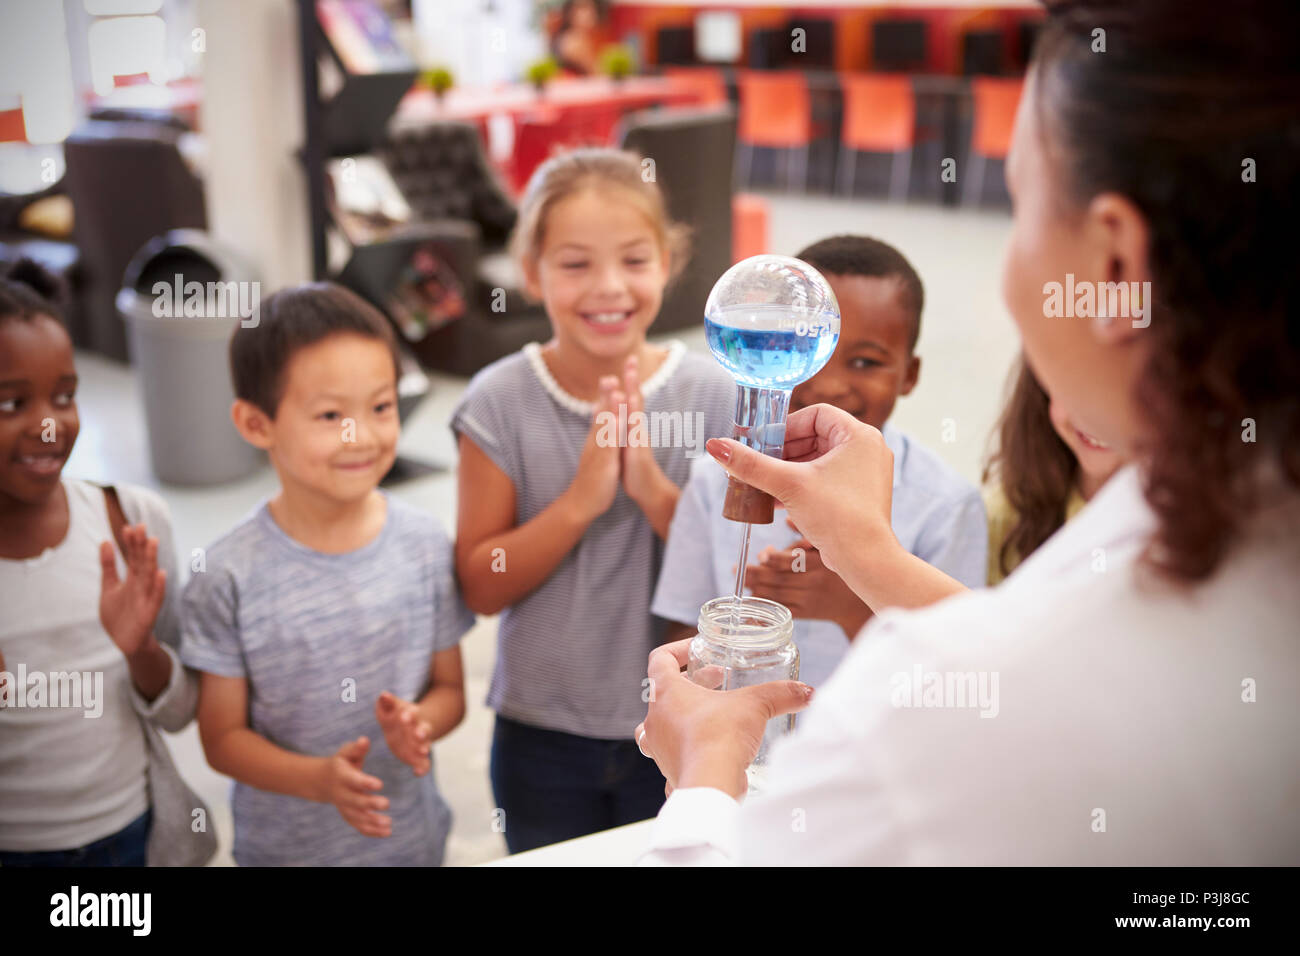 Lab technician showing excited kids an experiment, close up - Stock Image